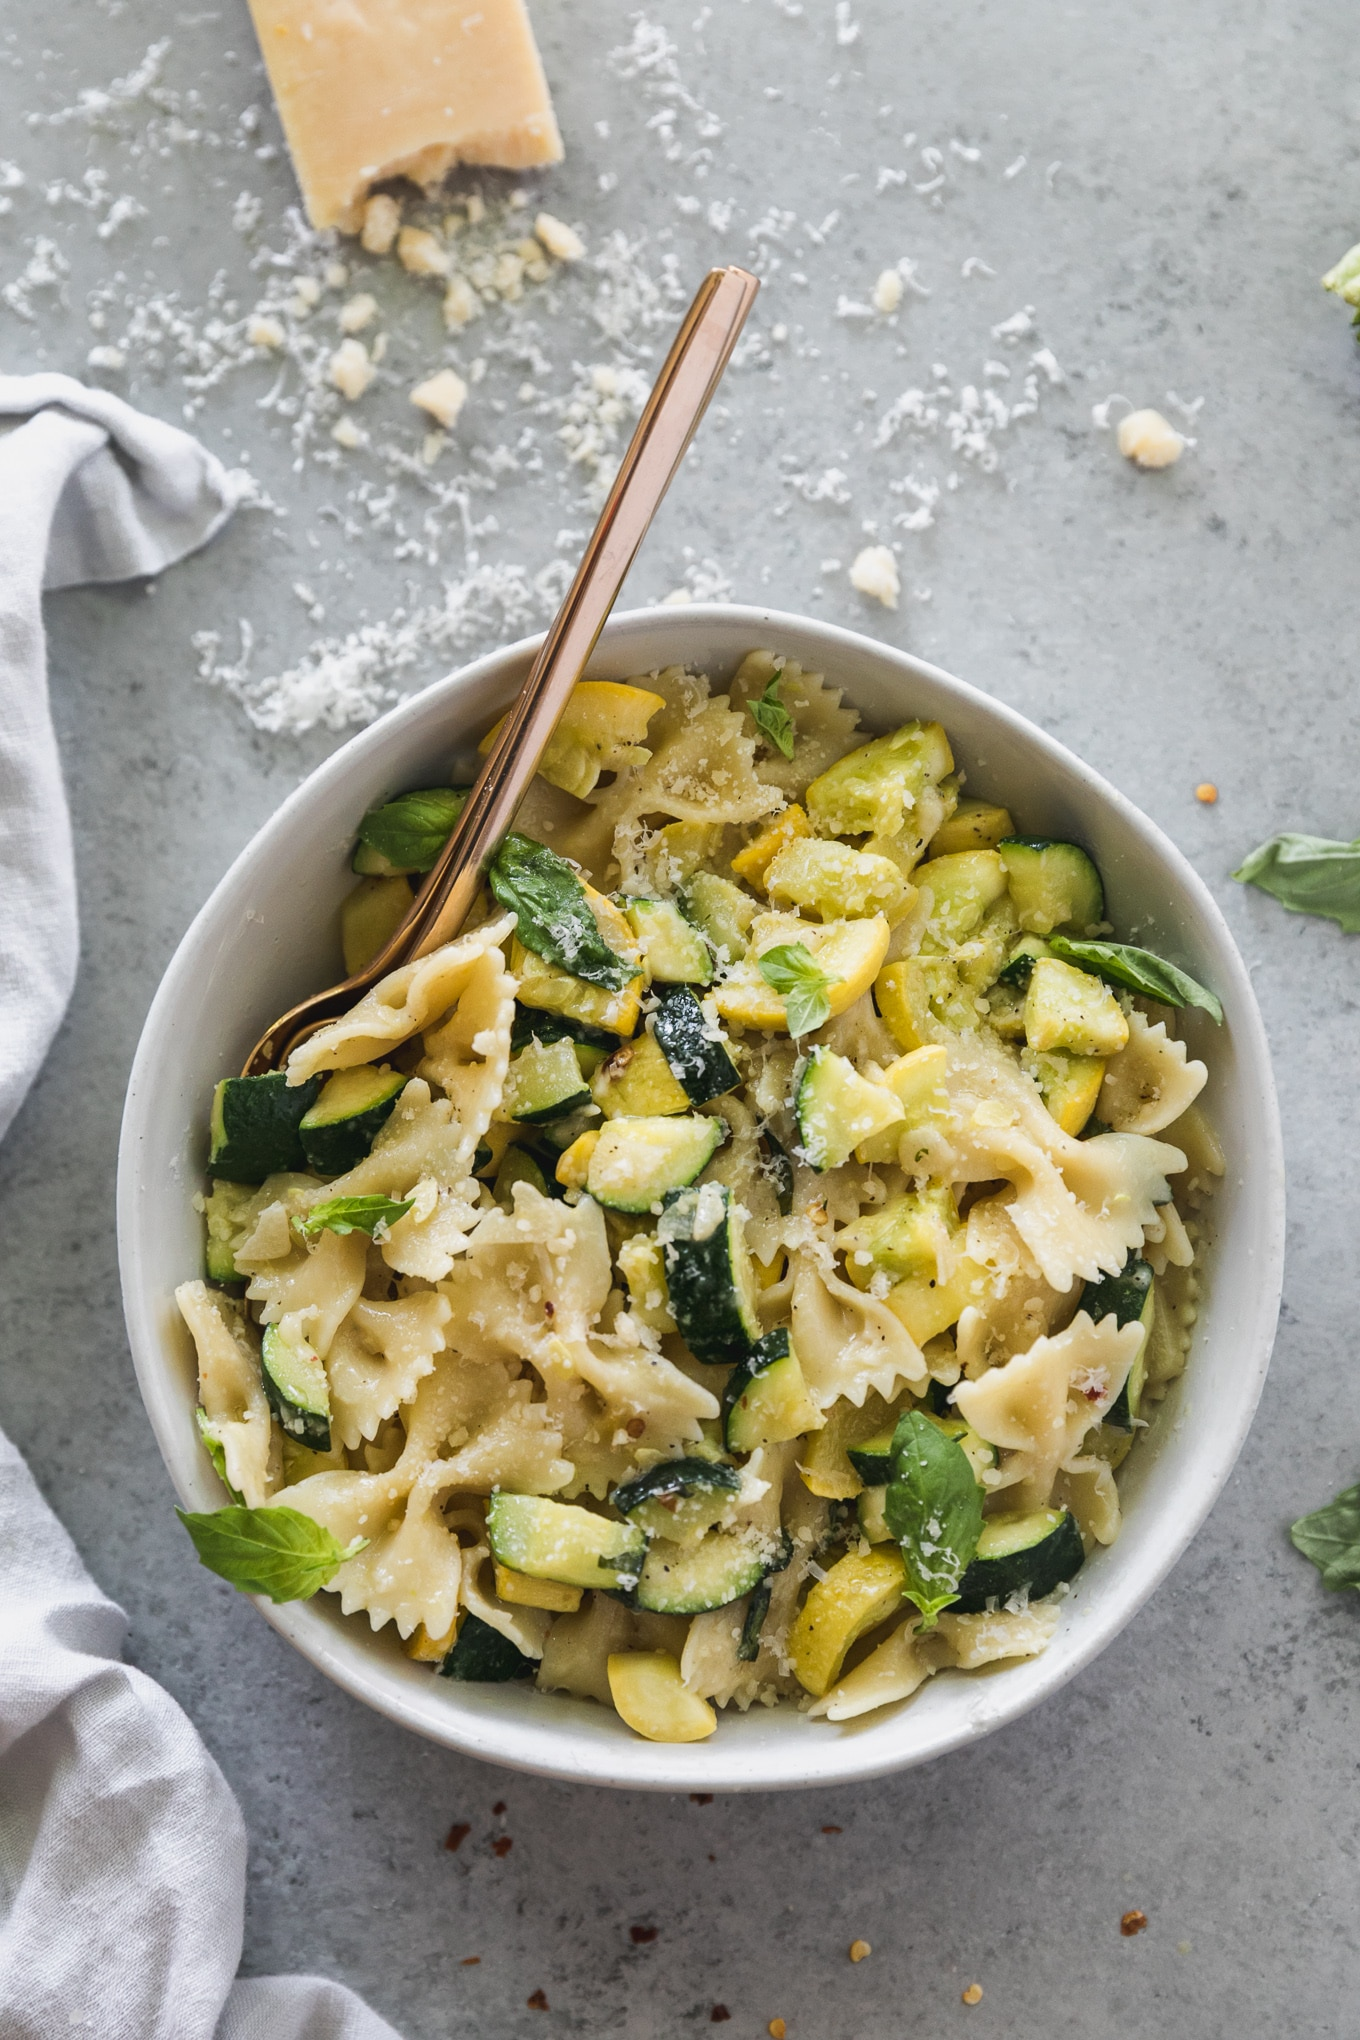 Overhead shot of a bowl of pasta with zucchini, summer squash, basil, parmesan, and a gold fork sticking out of the bowl